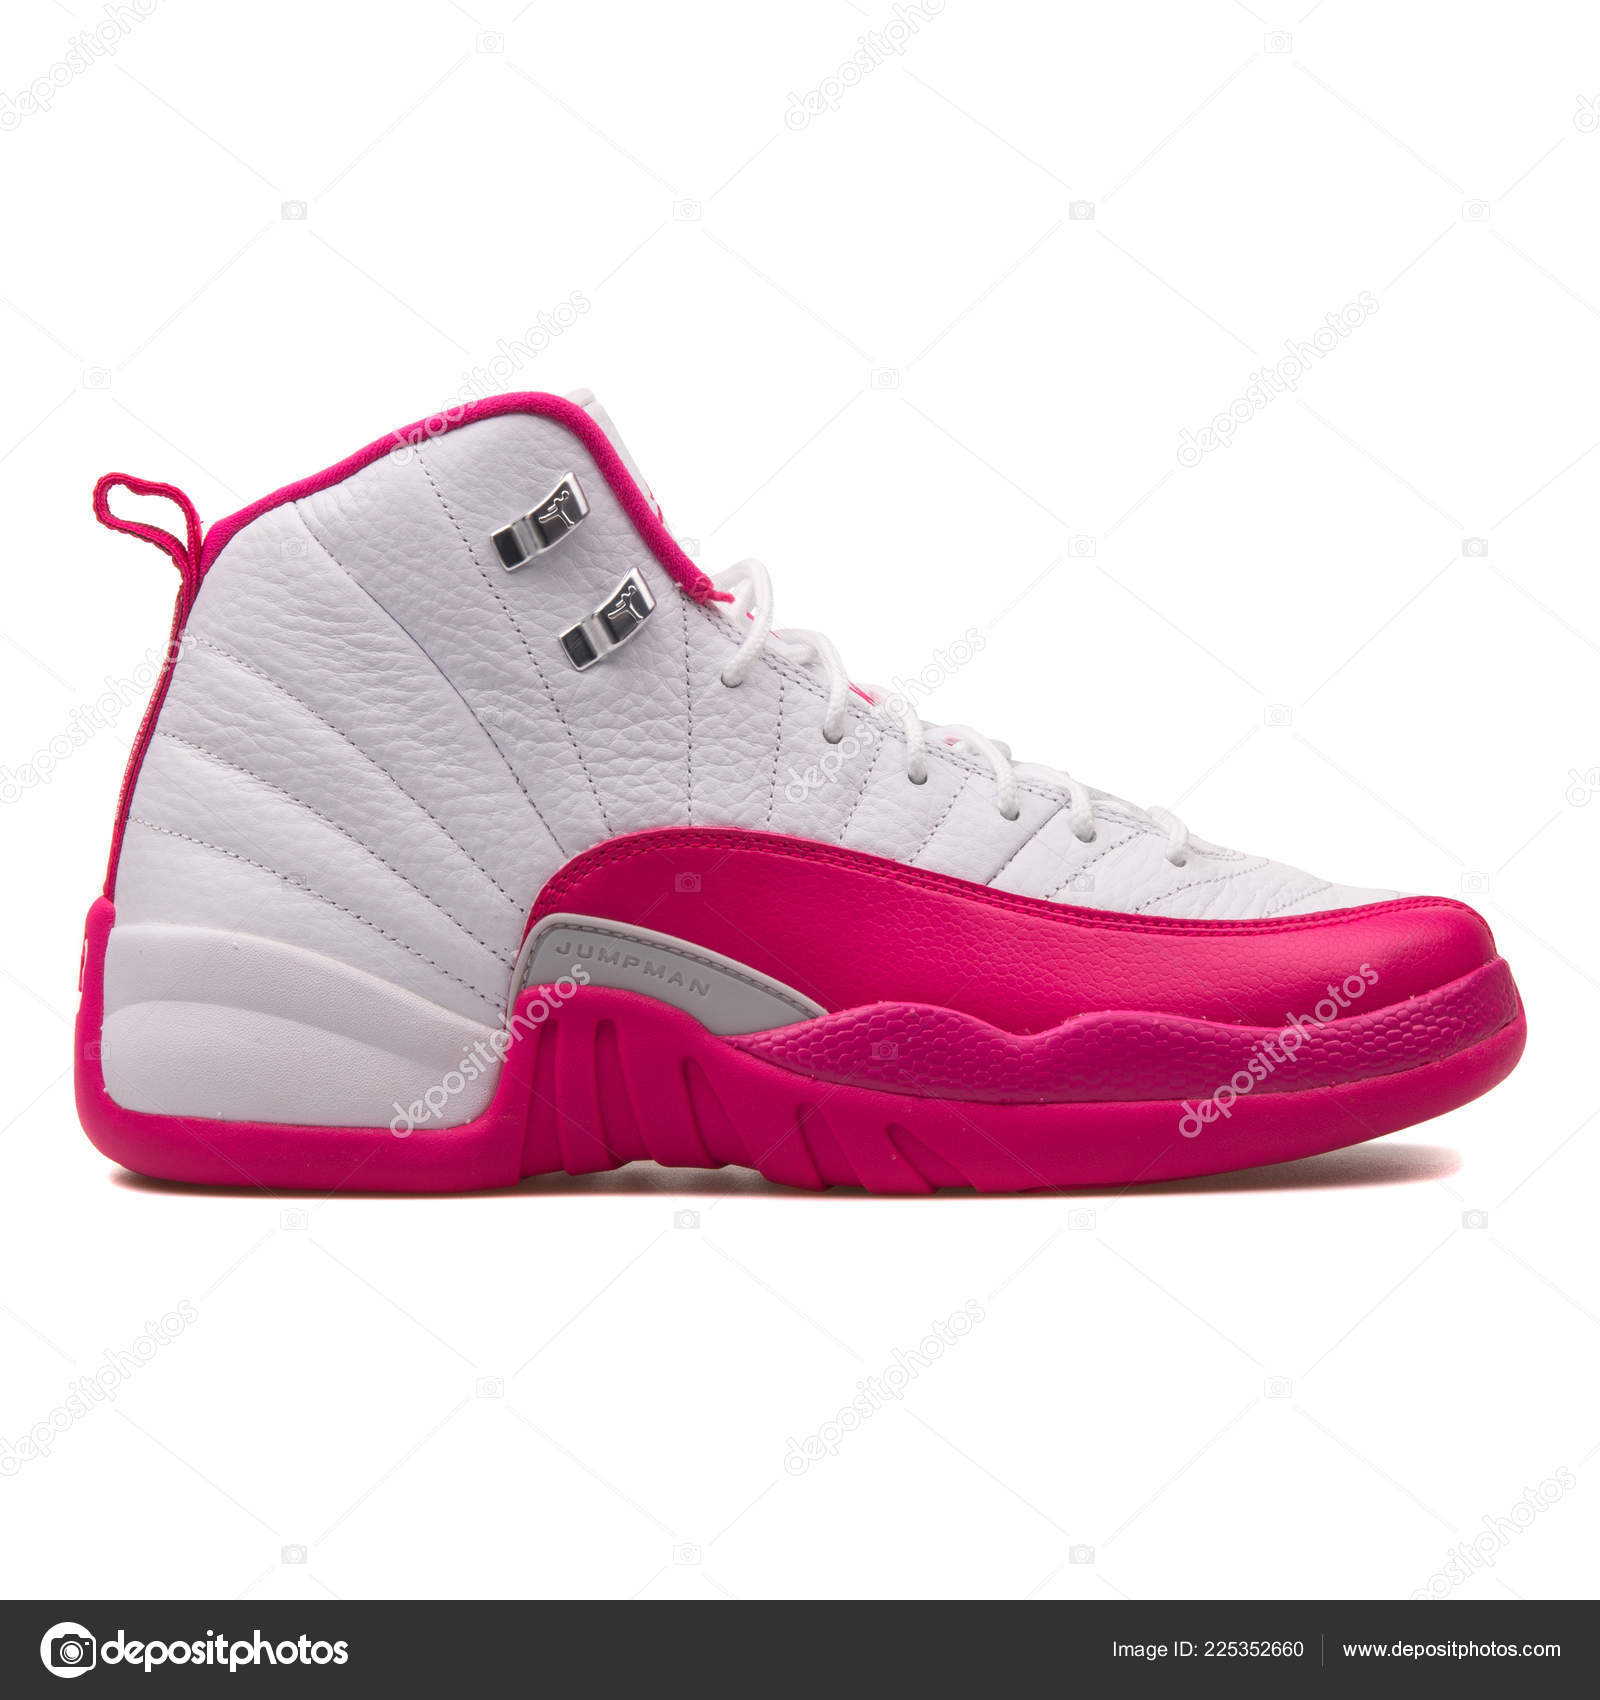 half off f78c0 c657d VIENNA, AUSTRIA - JUNE 14, 2017  Nike Air Jordan 12 Retro pink and white  sneaker isolated on white background. — Photo by xMarshallfilms